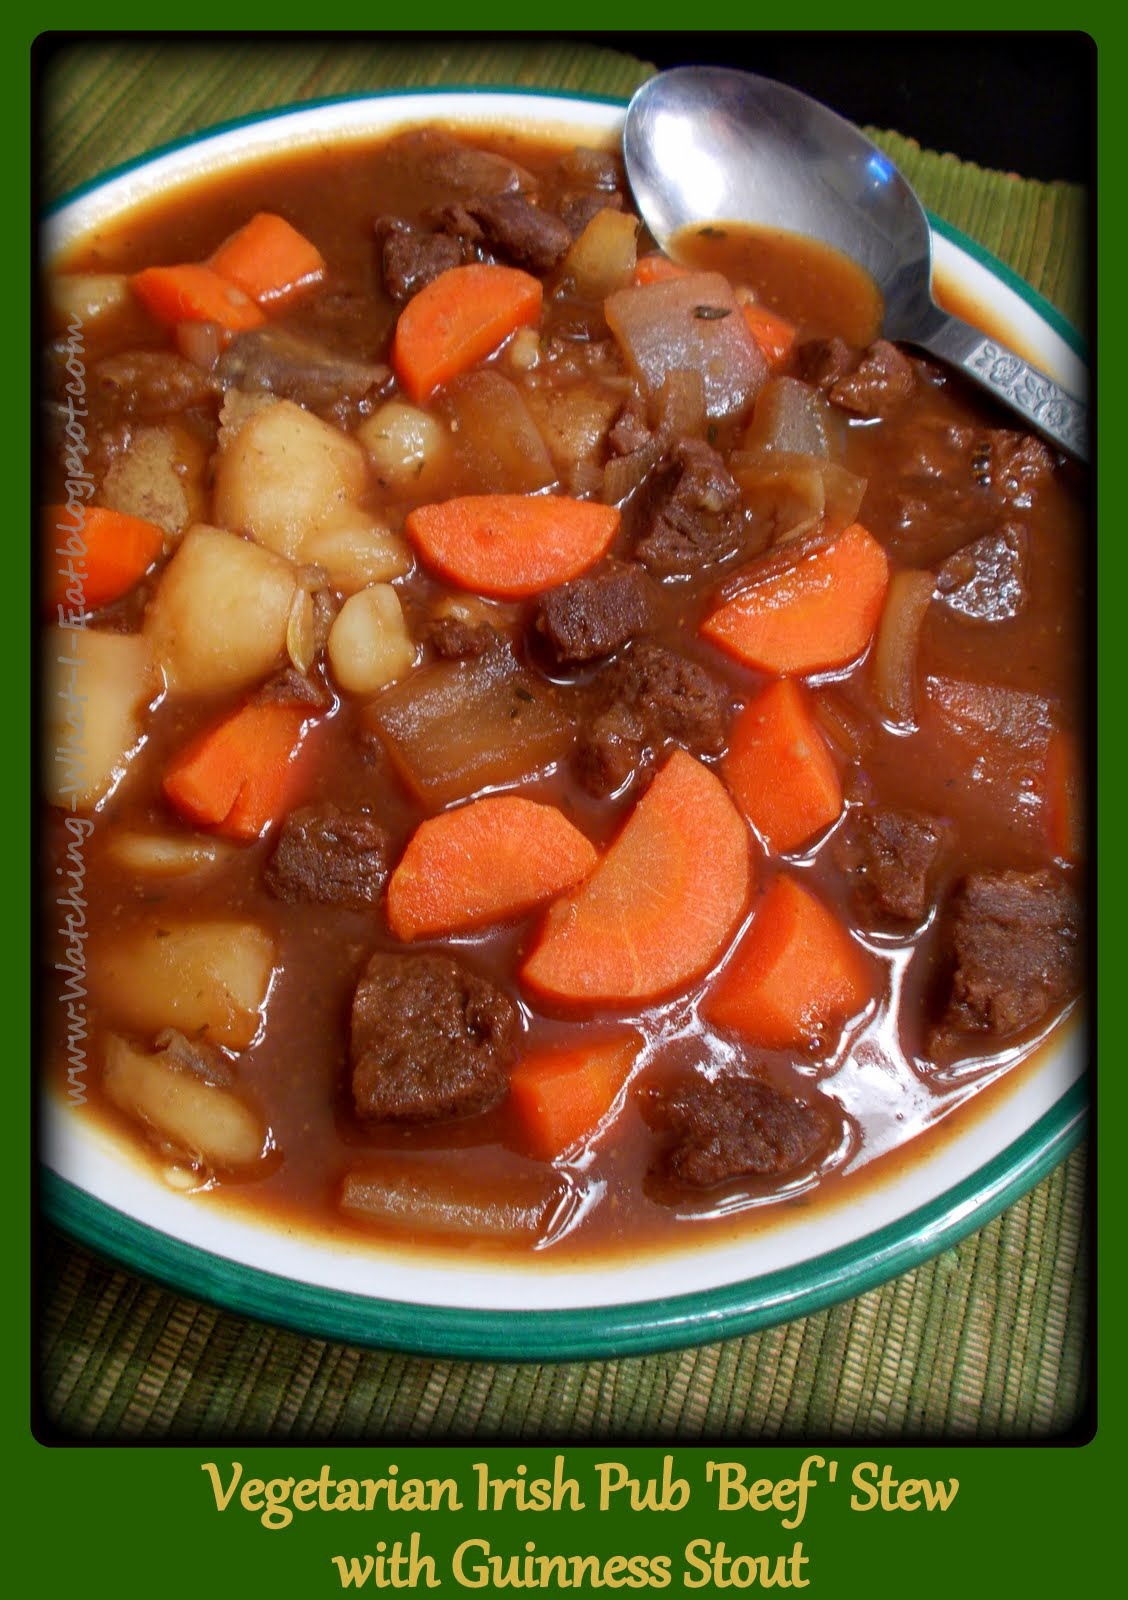 ... Vegetarian Irish Pub 'Beef' Stew with Guinness Stout ~ Meatless M...